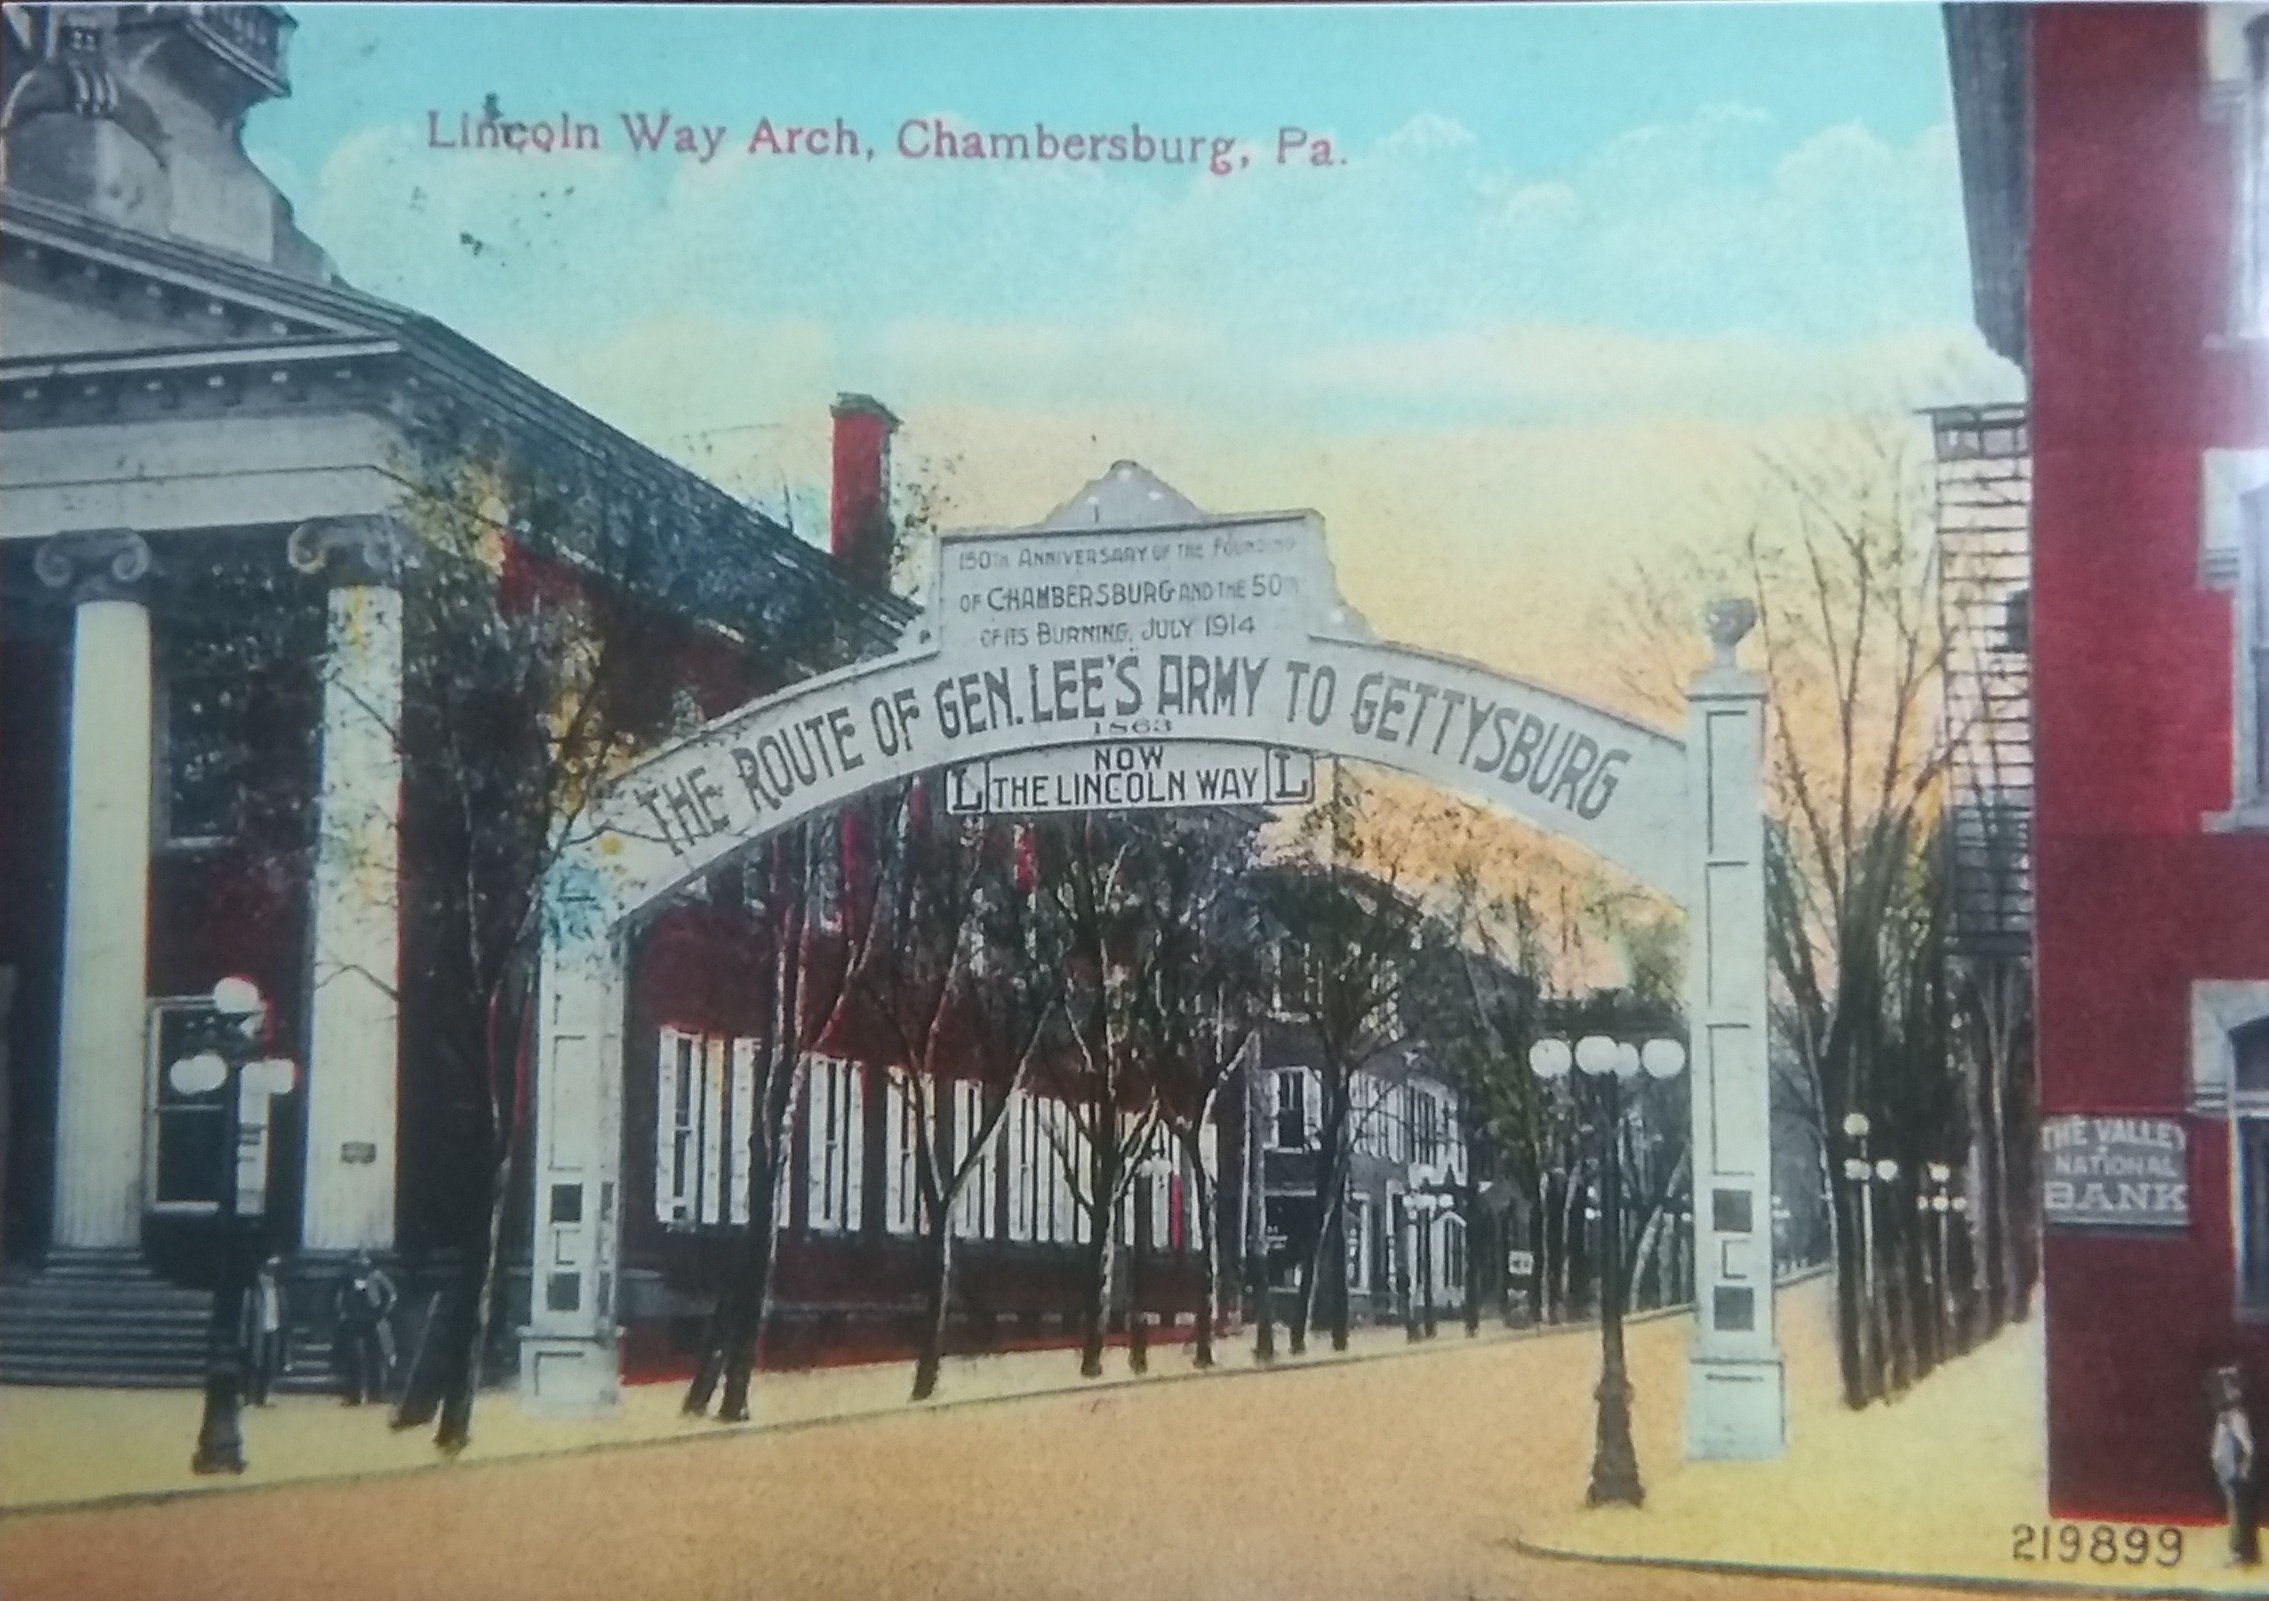 The Lincoln Way Arch in downtown Chambersburg shows that the Capitol Theatre is built in a town with historical significance. Photo Courtesy of Lincoln Highway Heritage Corridor.